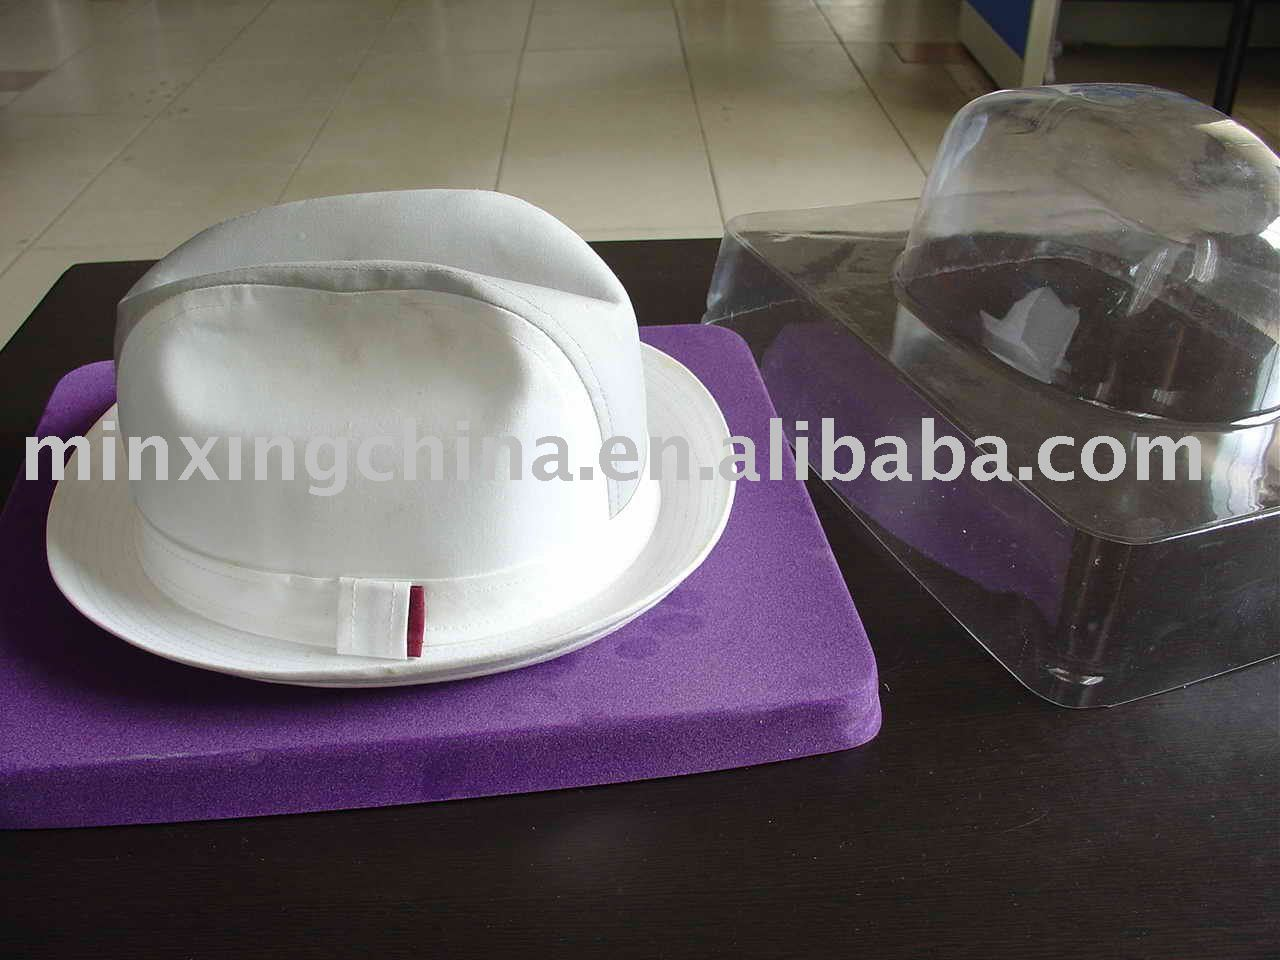 Acrylic Hat Boxes : List manufacturers of clear hat boxes buy